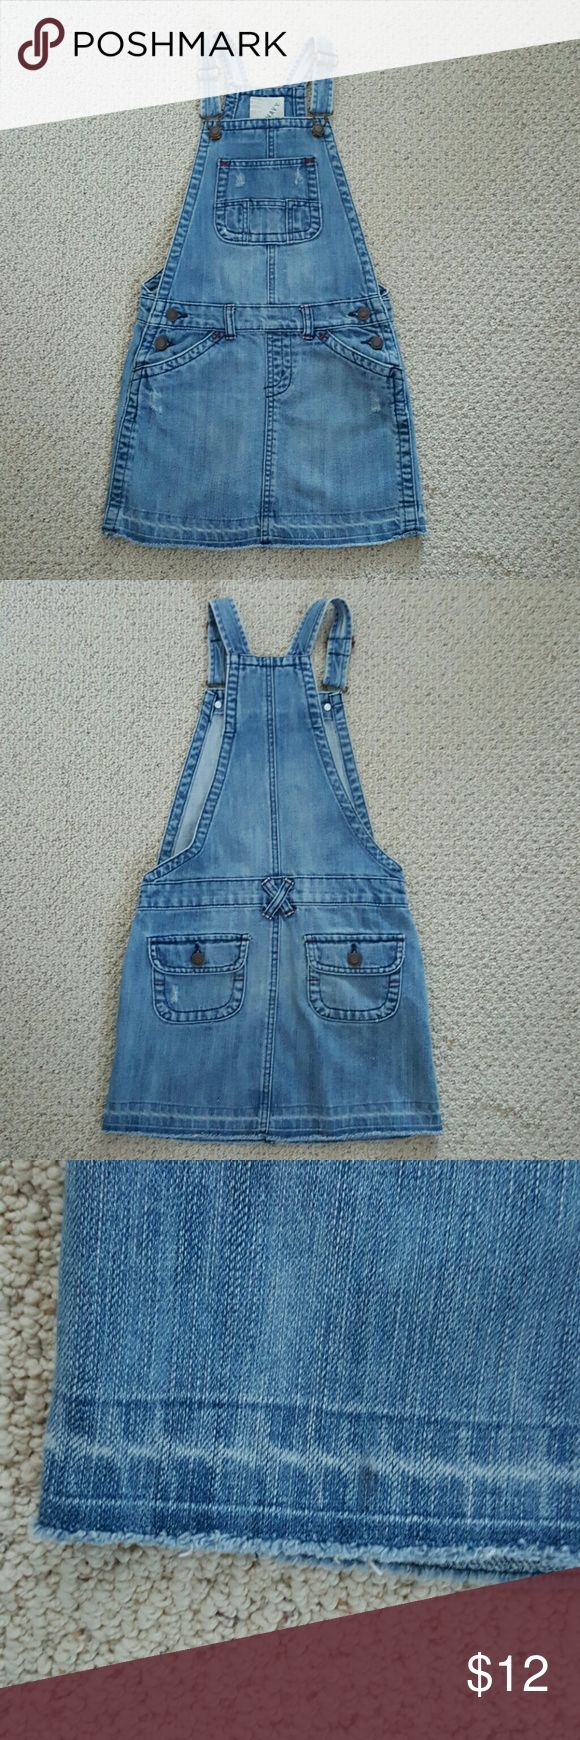 Distressed Lt. Blue Wash Denim Overalls Dress 100% Cotton  Length: 12 inches from waist to hemline  Old Navy's overalls dress is intentionally distressed and the hemline is in a cutoff style. (see pic #3) It has adjustable/detachable straps and 2 buttons on the sides of the waist.  Bronze colored signature hardware with 3 pockets in front & 2 covered pockets in the back with red threading accents on pockets and belt loops. Great condition without rips or stains.  *Shipping next day / Bundle…